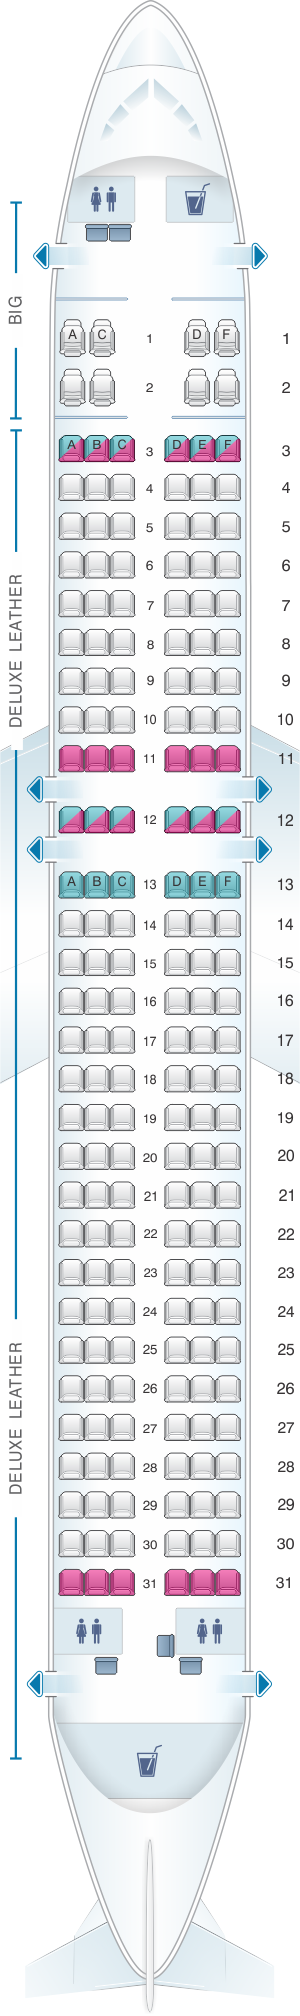 Seat map for Spirit Airlines Airbus A320 182PAX